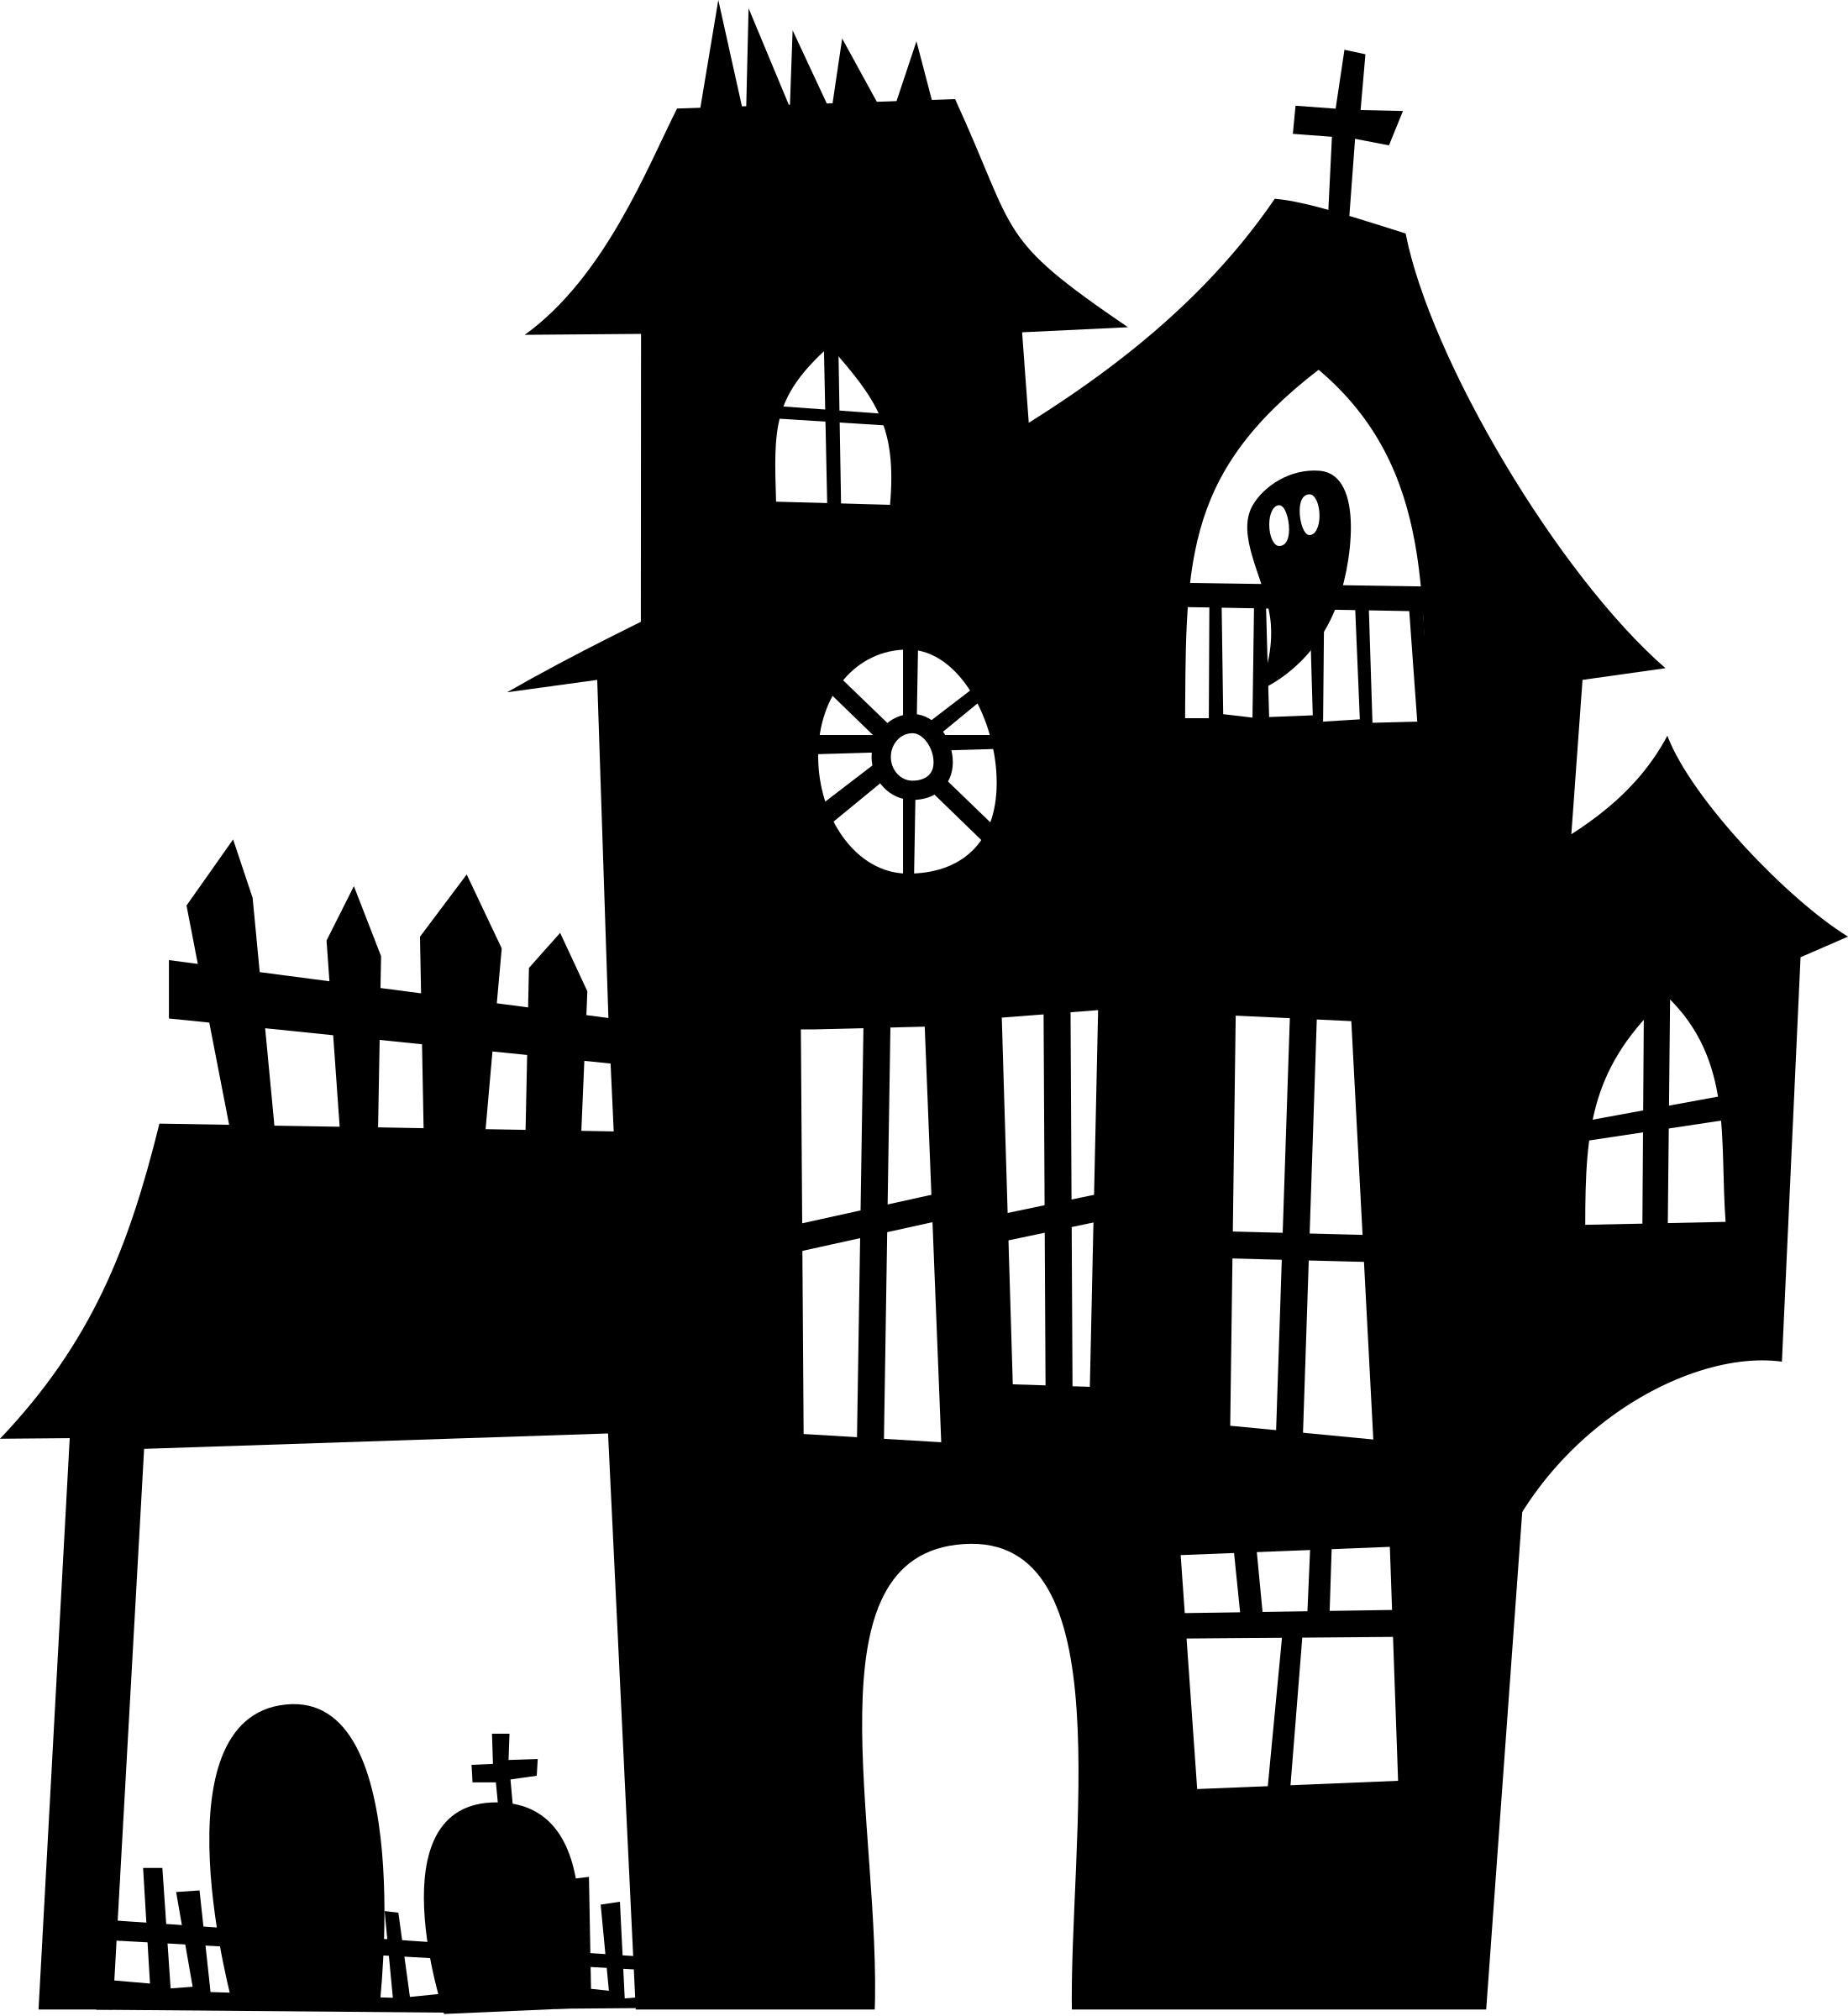 Black and white haunted house clipart image download 28+ Collection of Haunted Mansion Clipart | High quality, free ... image download